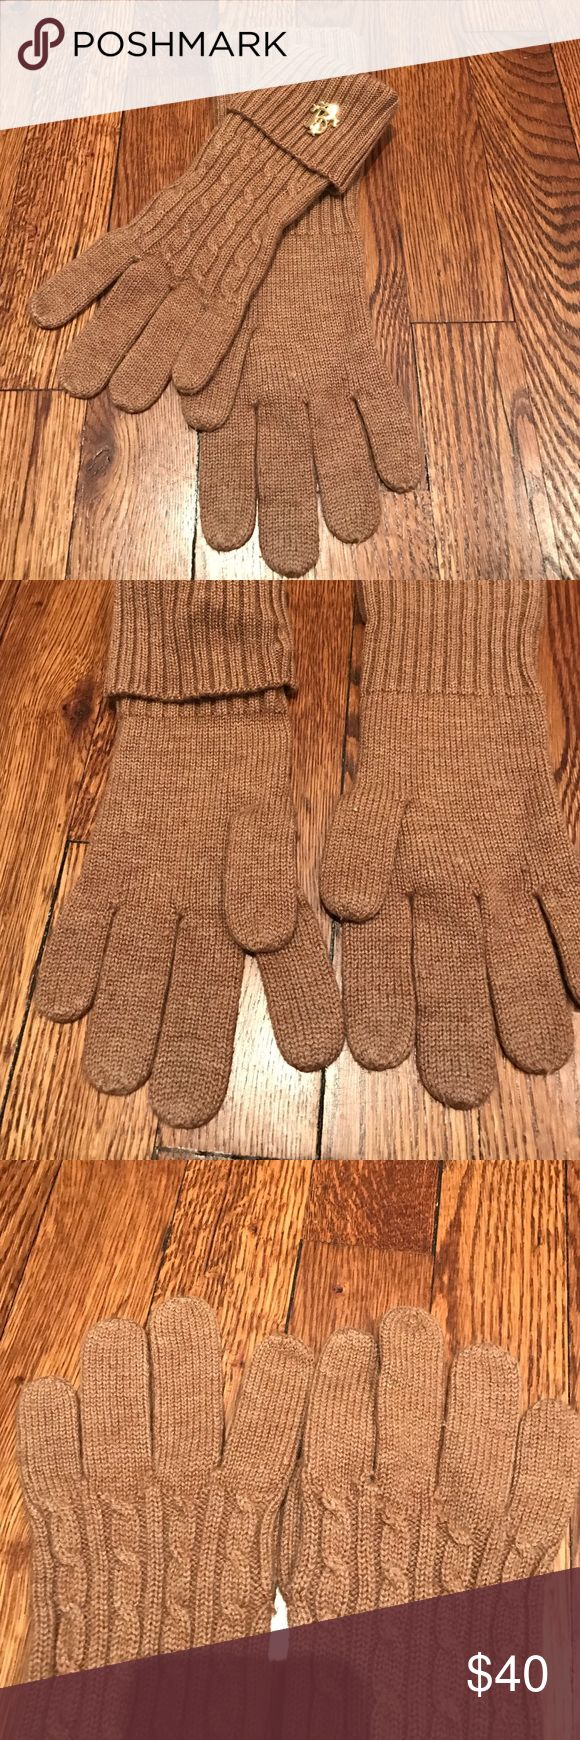 Tory Burch Gloves Used but in great condition. Camel color with gold tone logo. Tory Burch Accessories Gloves & Mittens